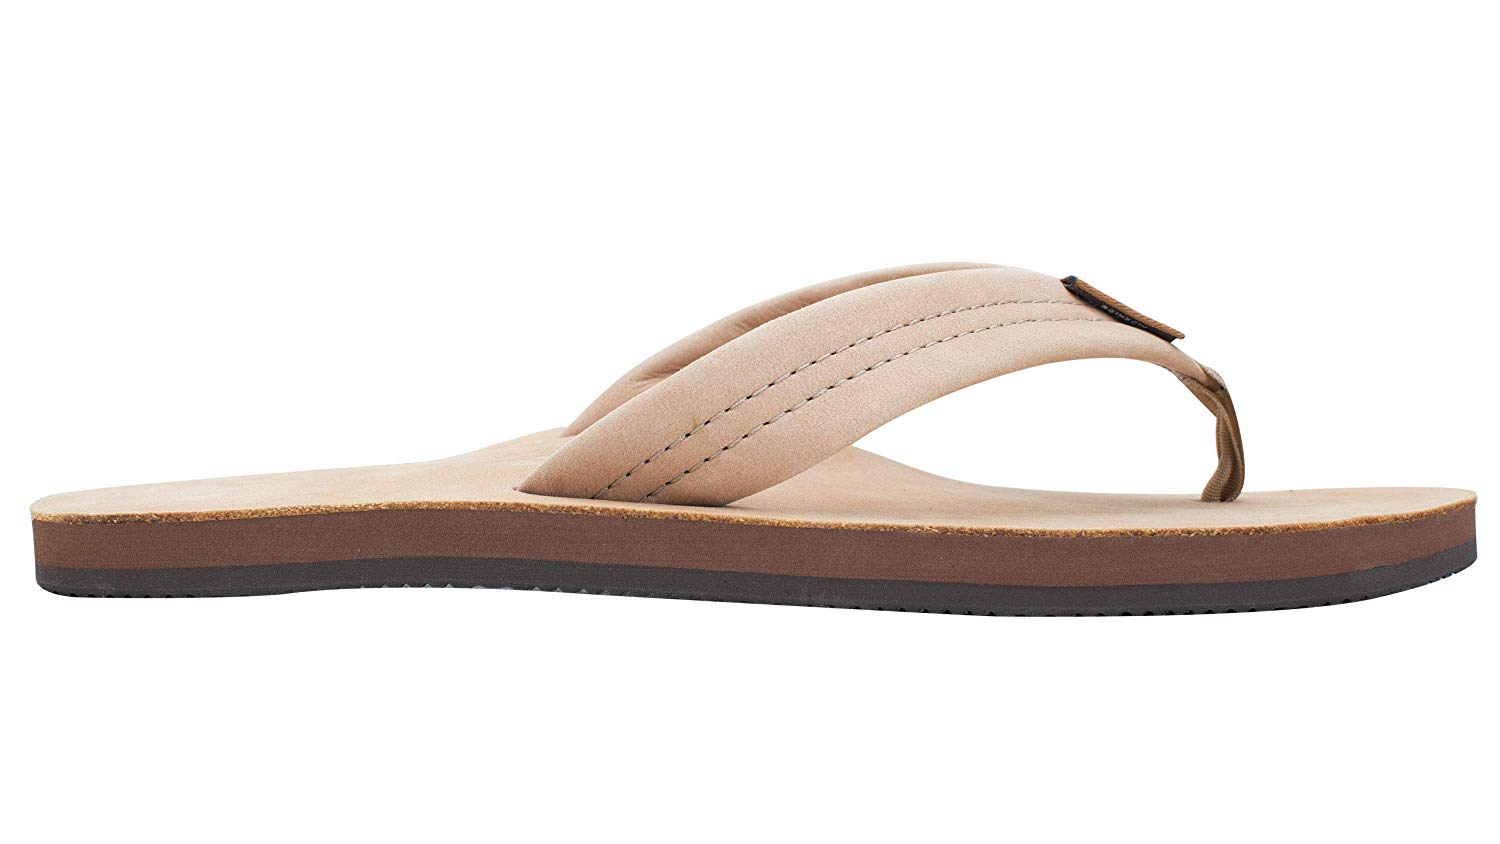 RAINBOW SANDALS SINGLE LAYER PREMIER LEATHER WITH ARCH SUPPORT  Mens SANDALS 301ALTS0-SRBR-M